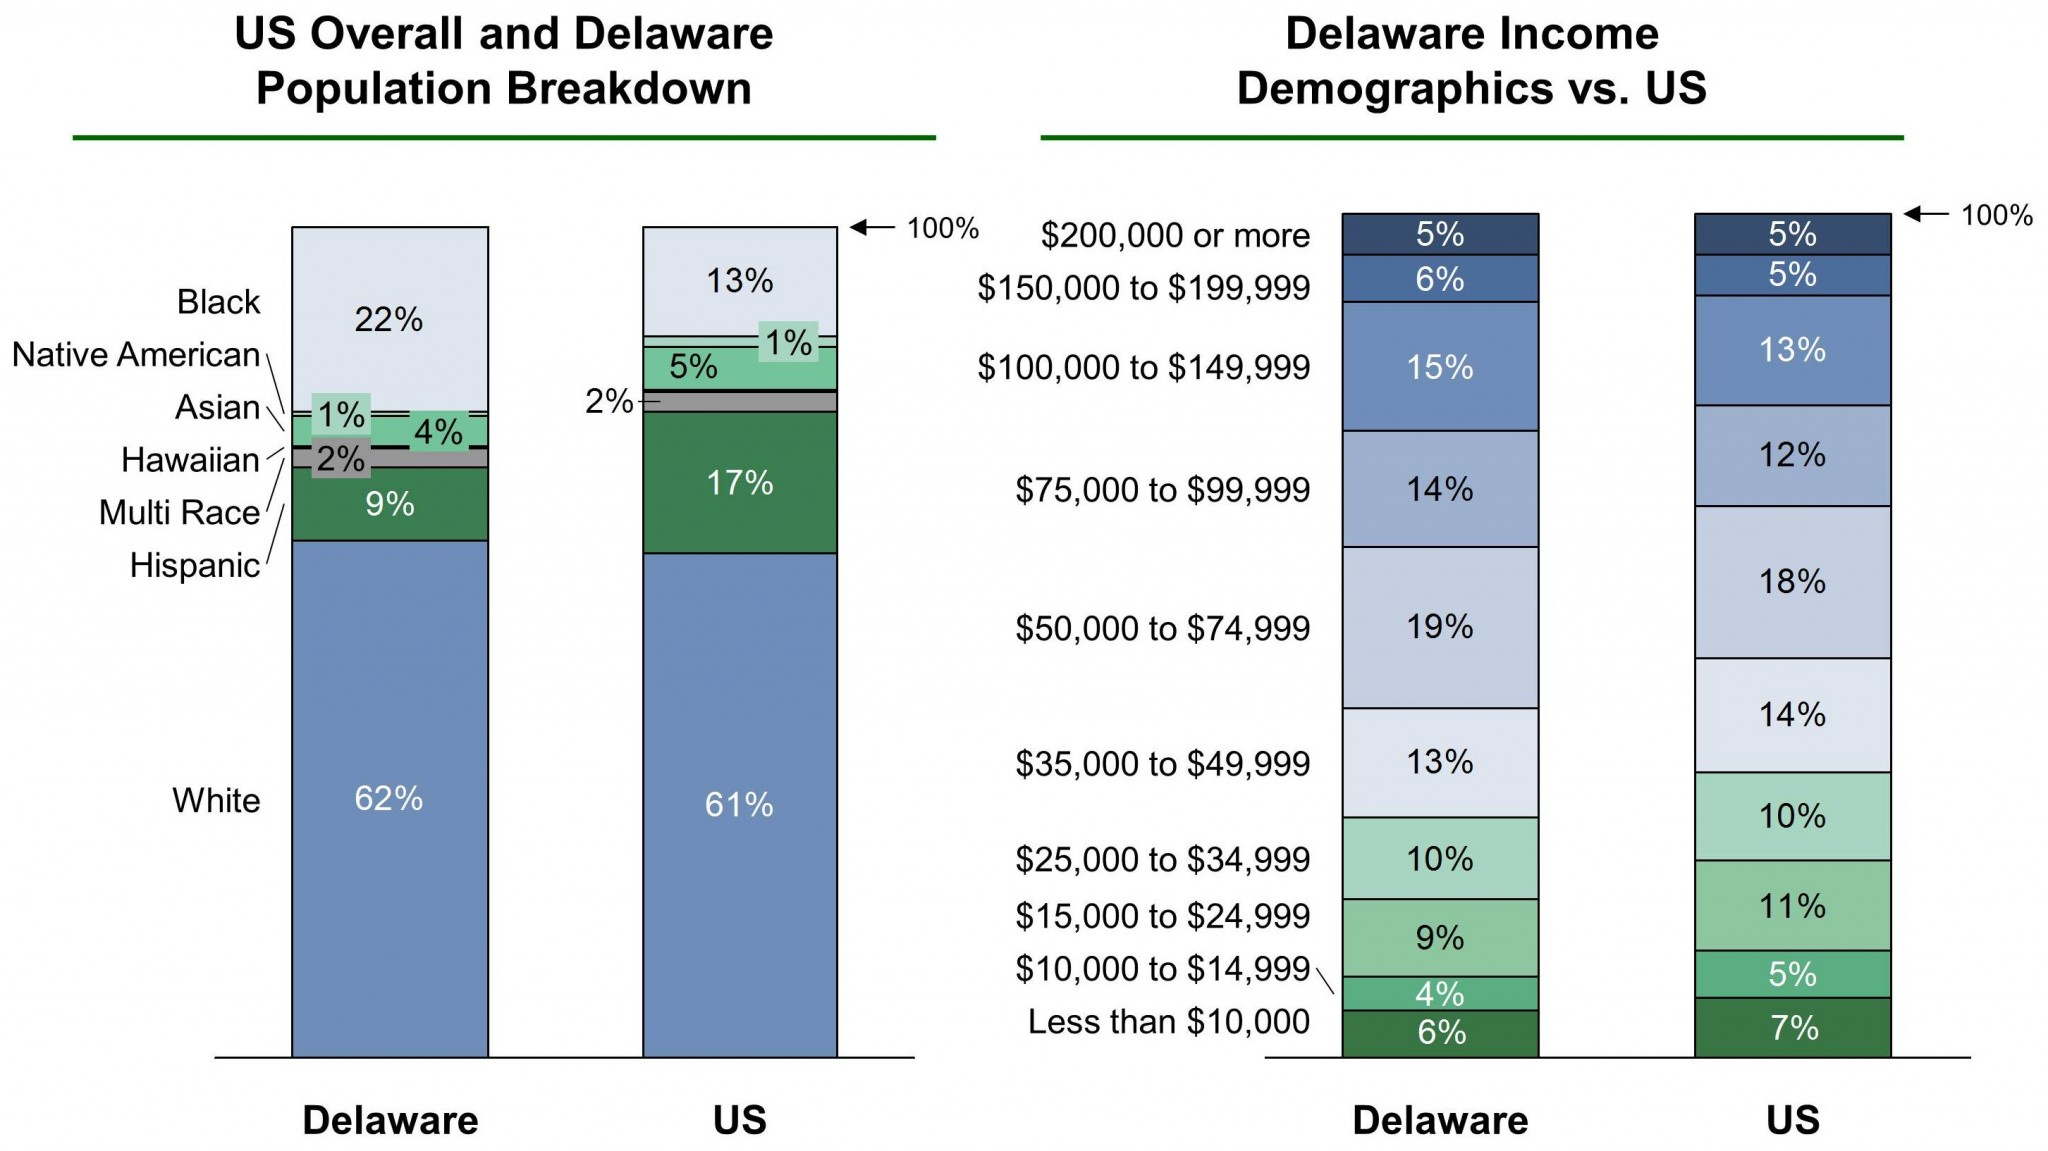 Delaware EB-5 Regional Center Demographics VF